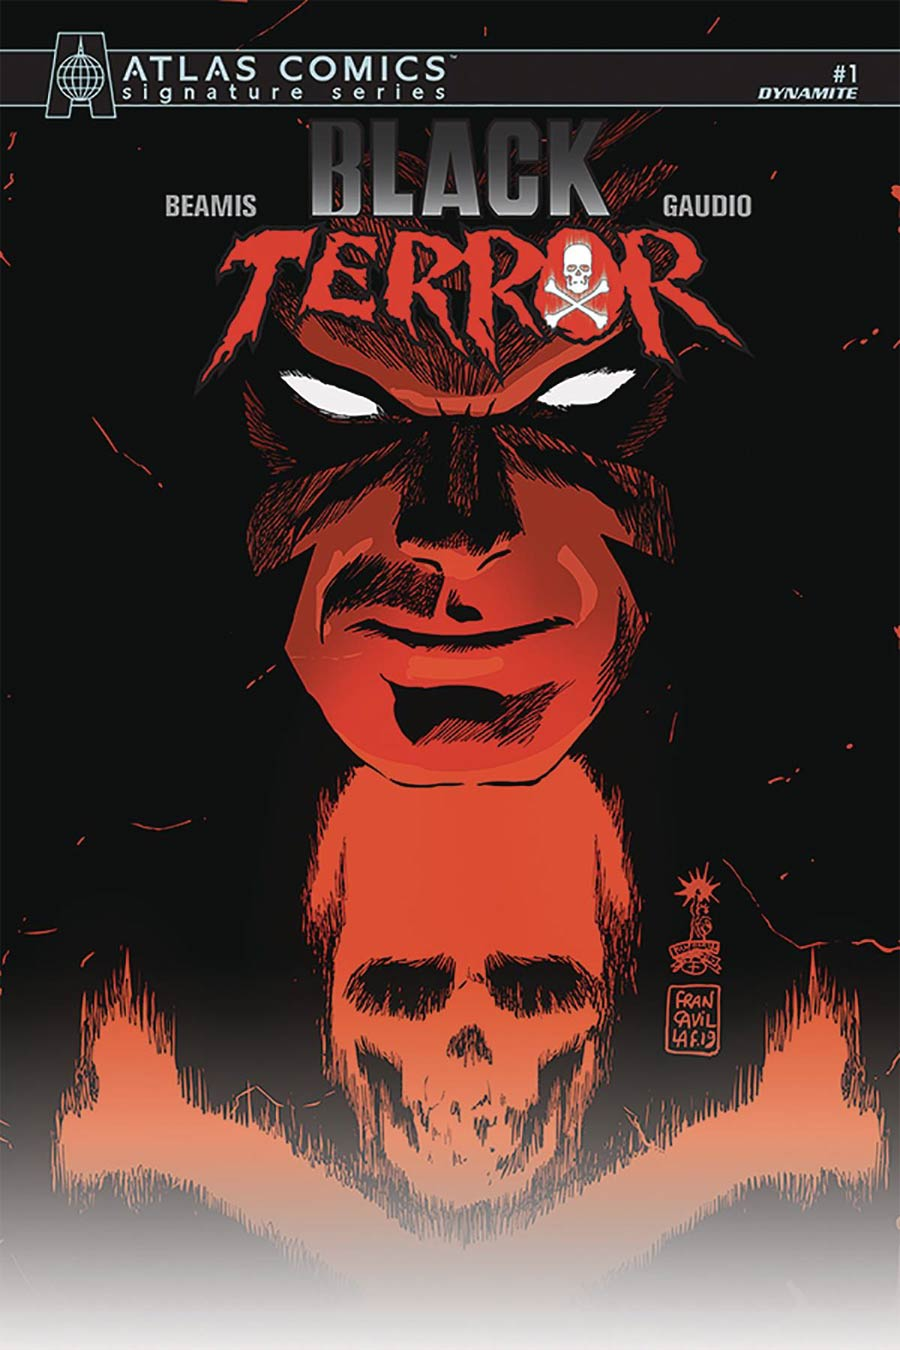 Black Terror Vol 4 #1 Cover M Atlas Comics Signature Series Signed By Max Bemis